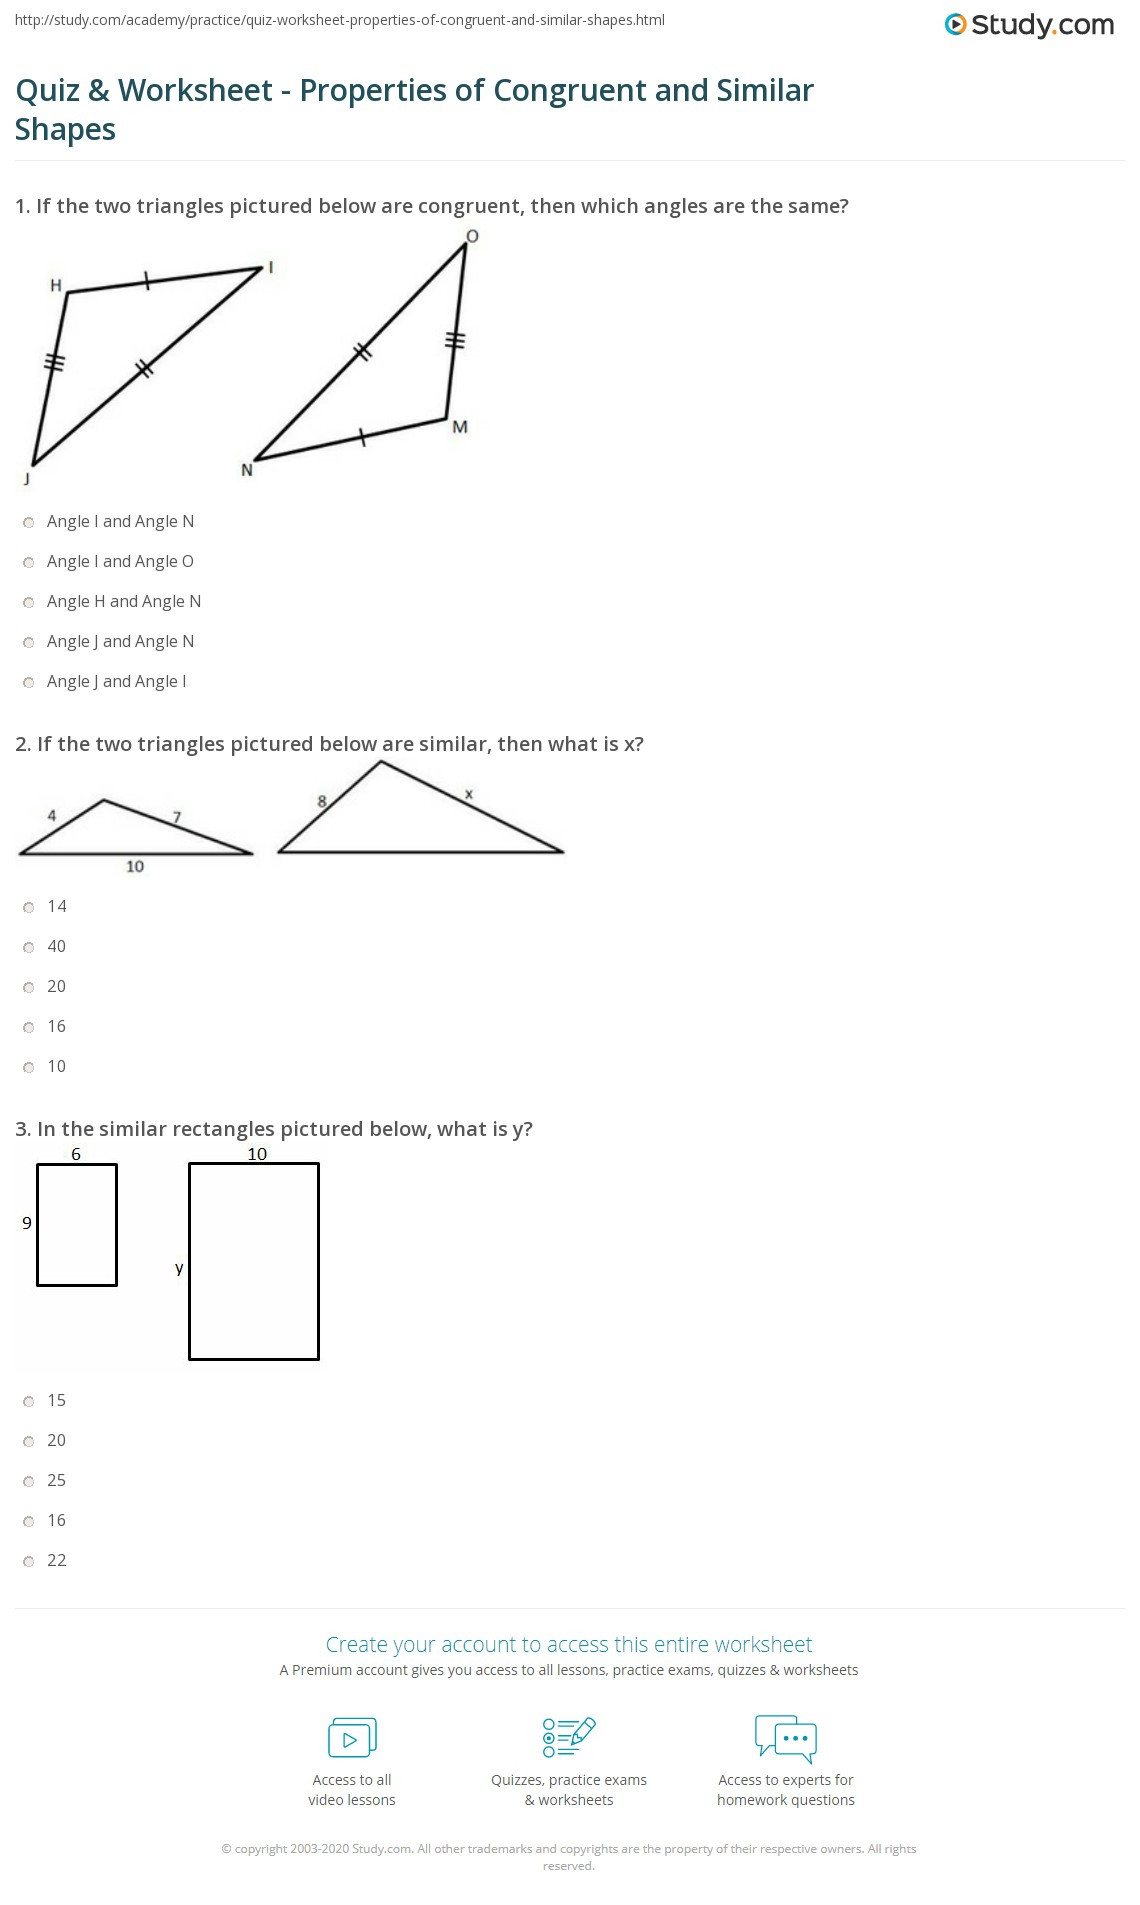 Triangle Congruence Worksheet Answers Quiz & Worksheet Properties Of Congruent and Similar